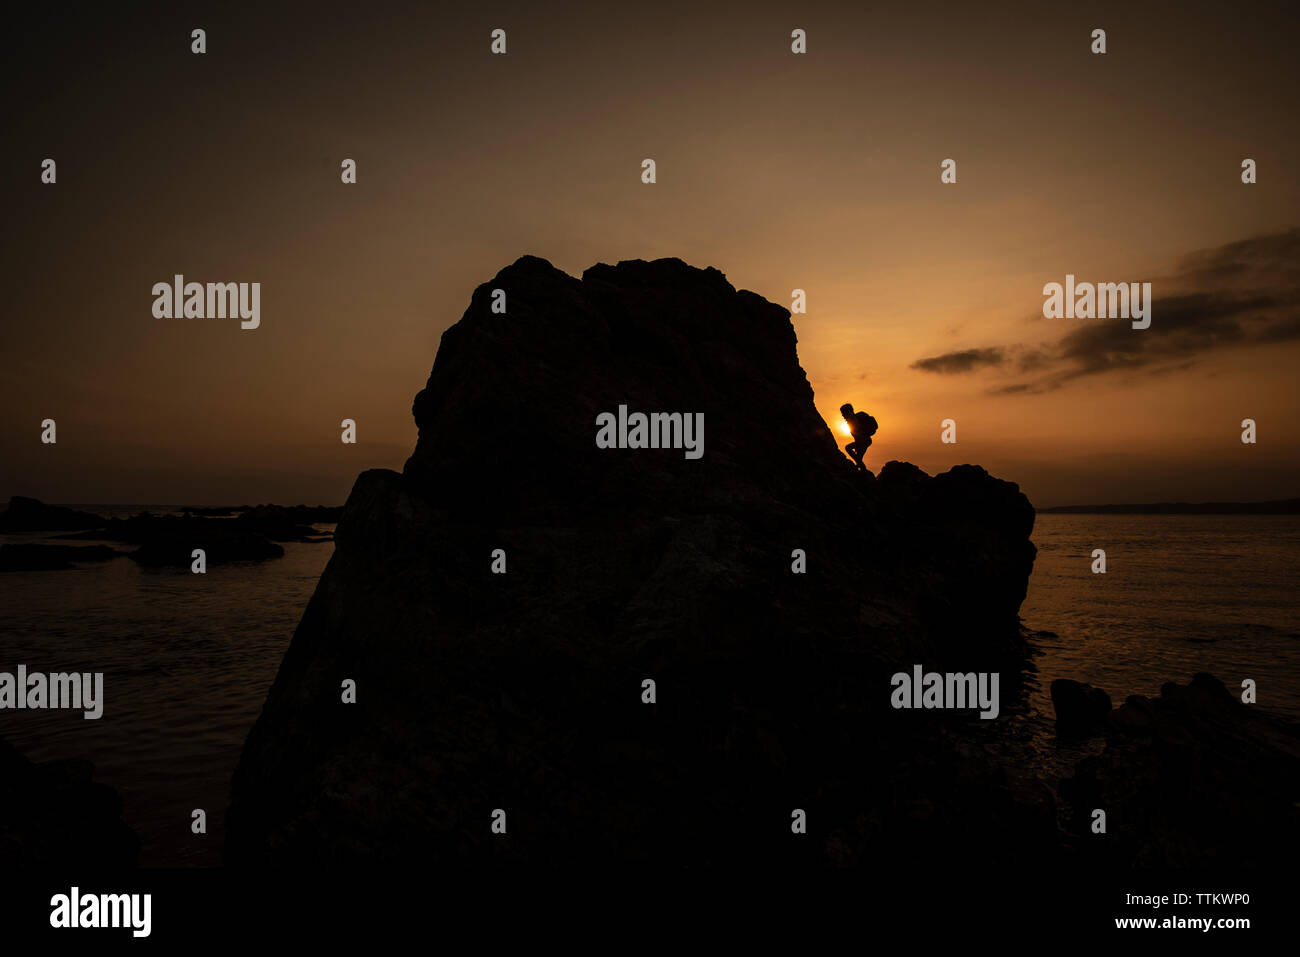 Silhouette child climbing on rock at beach against sky during sunset - Stock Image